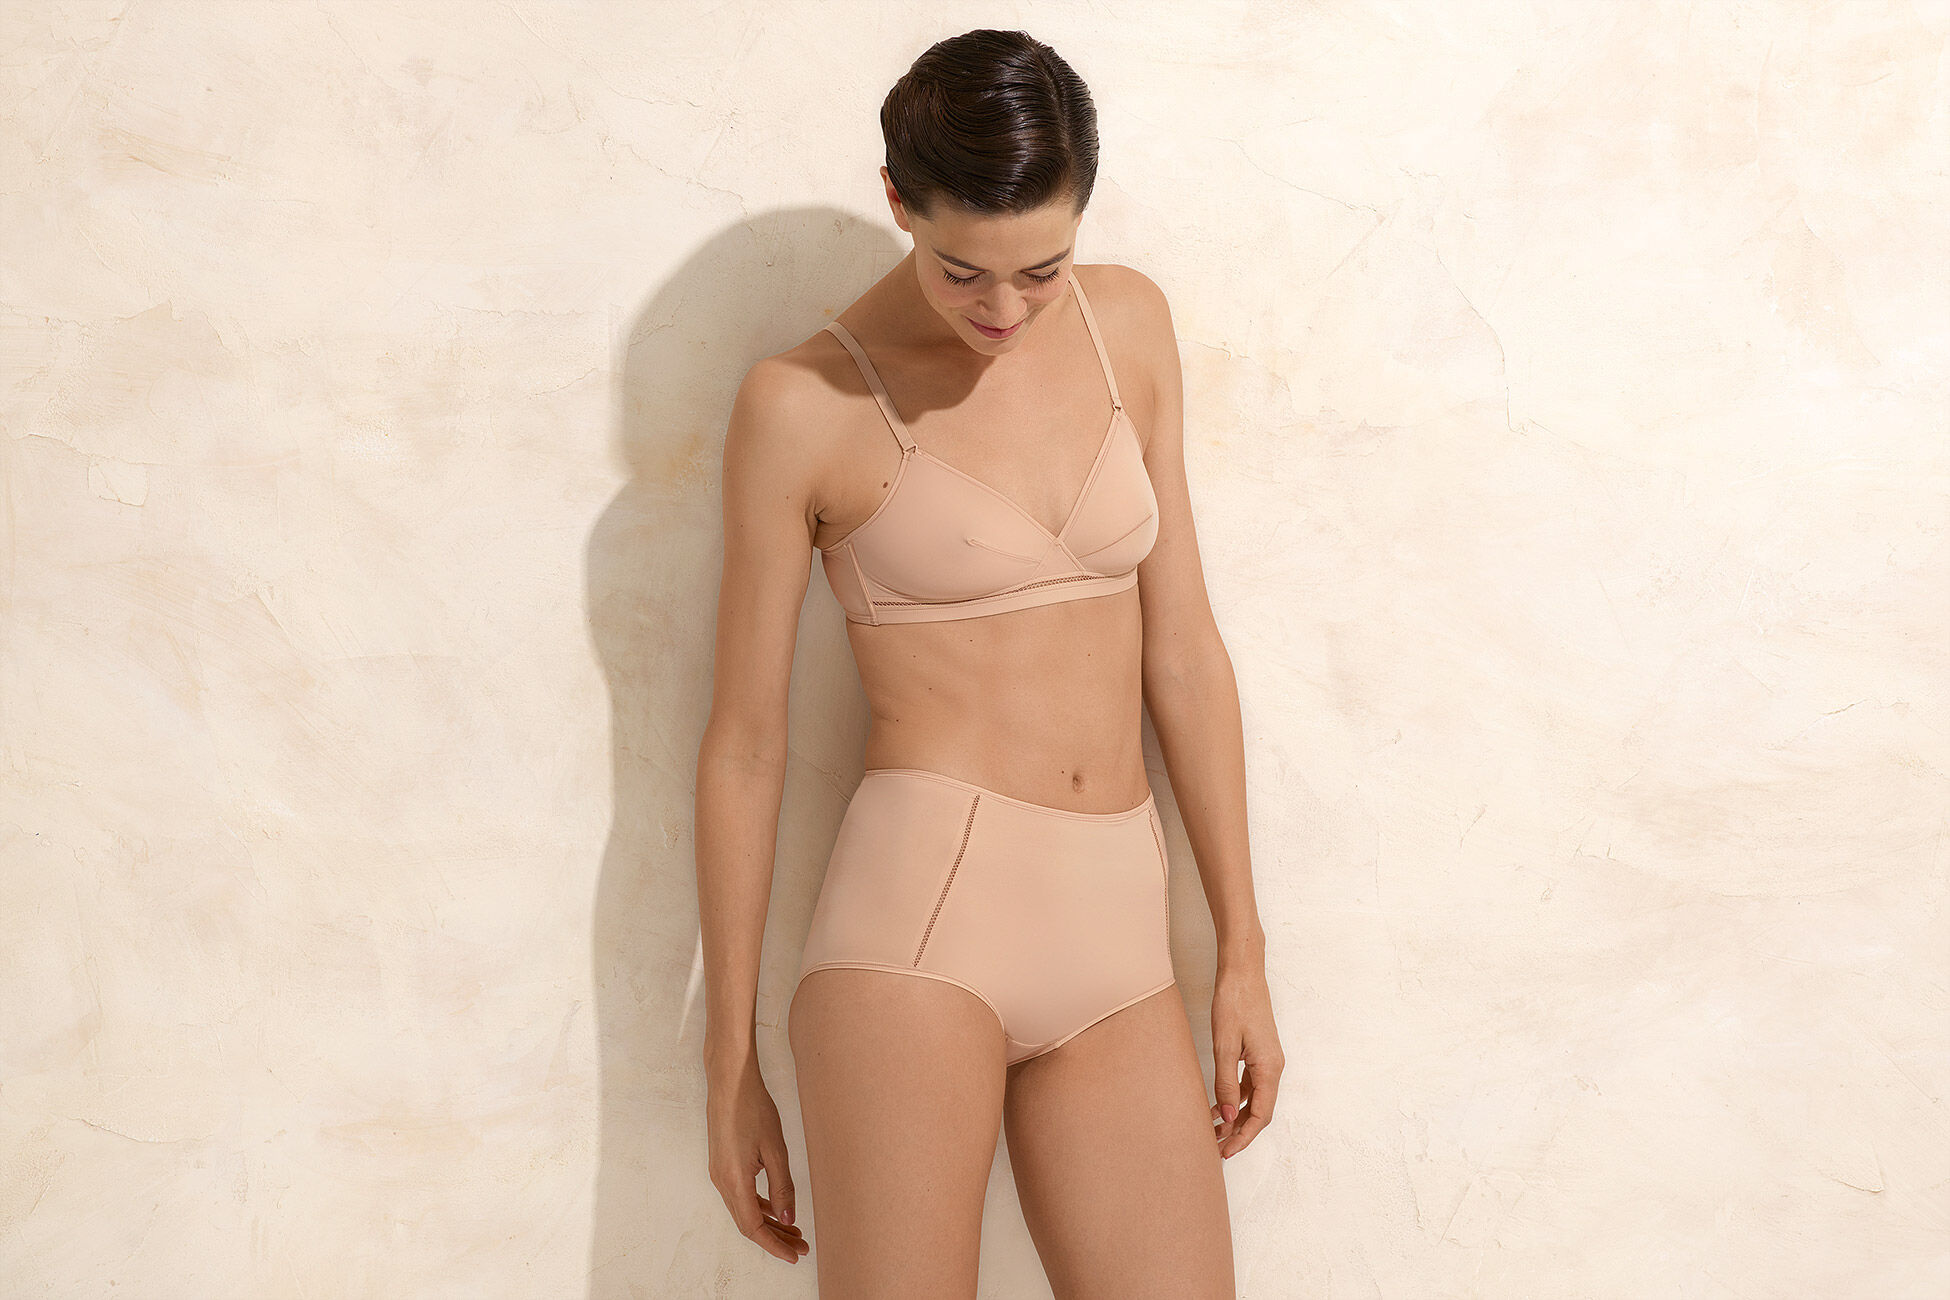 Lydia Triangle bra standard view �